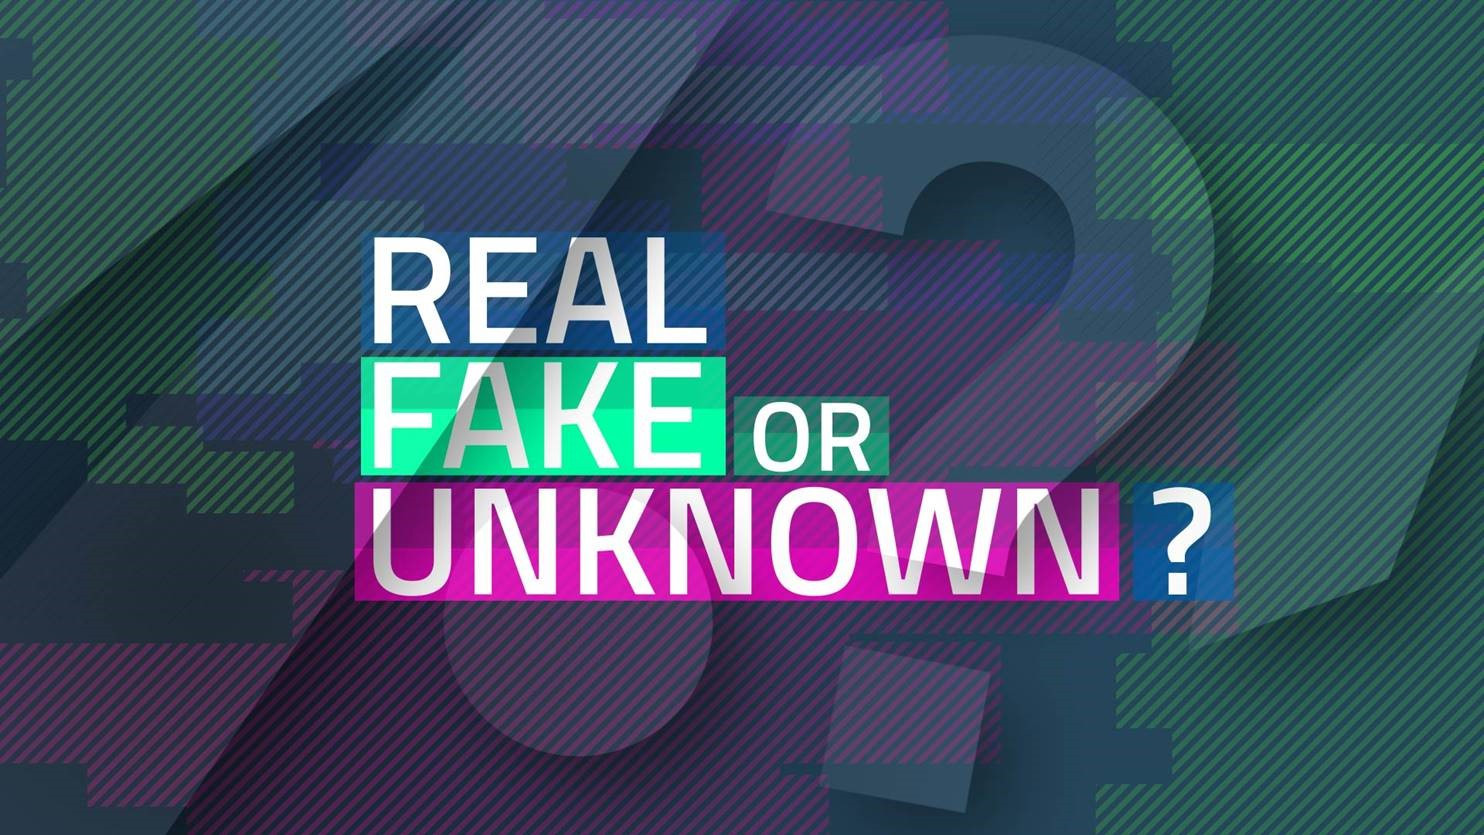 Real Fake or Unknown?